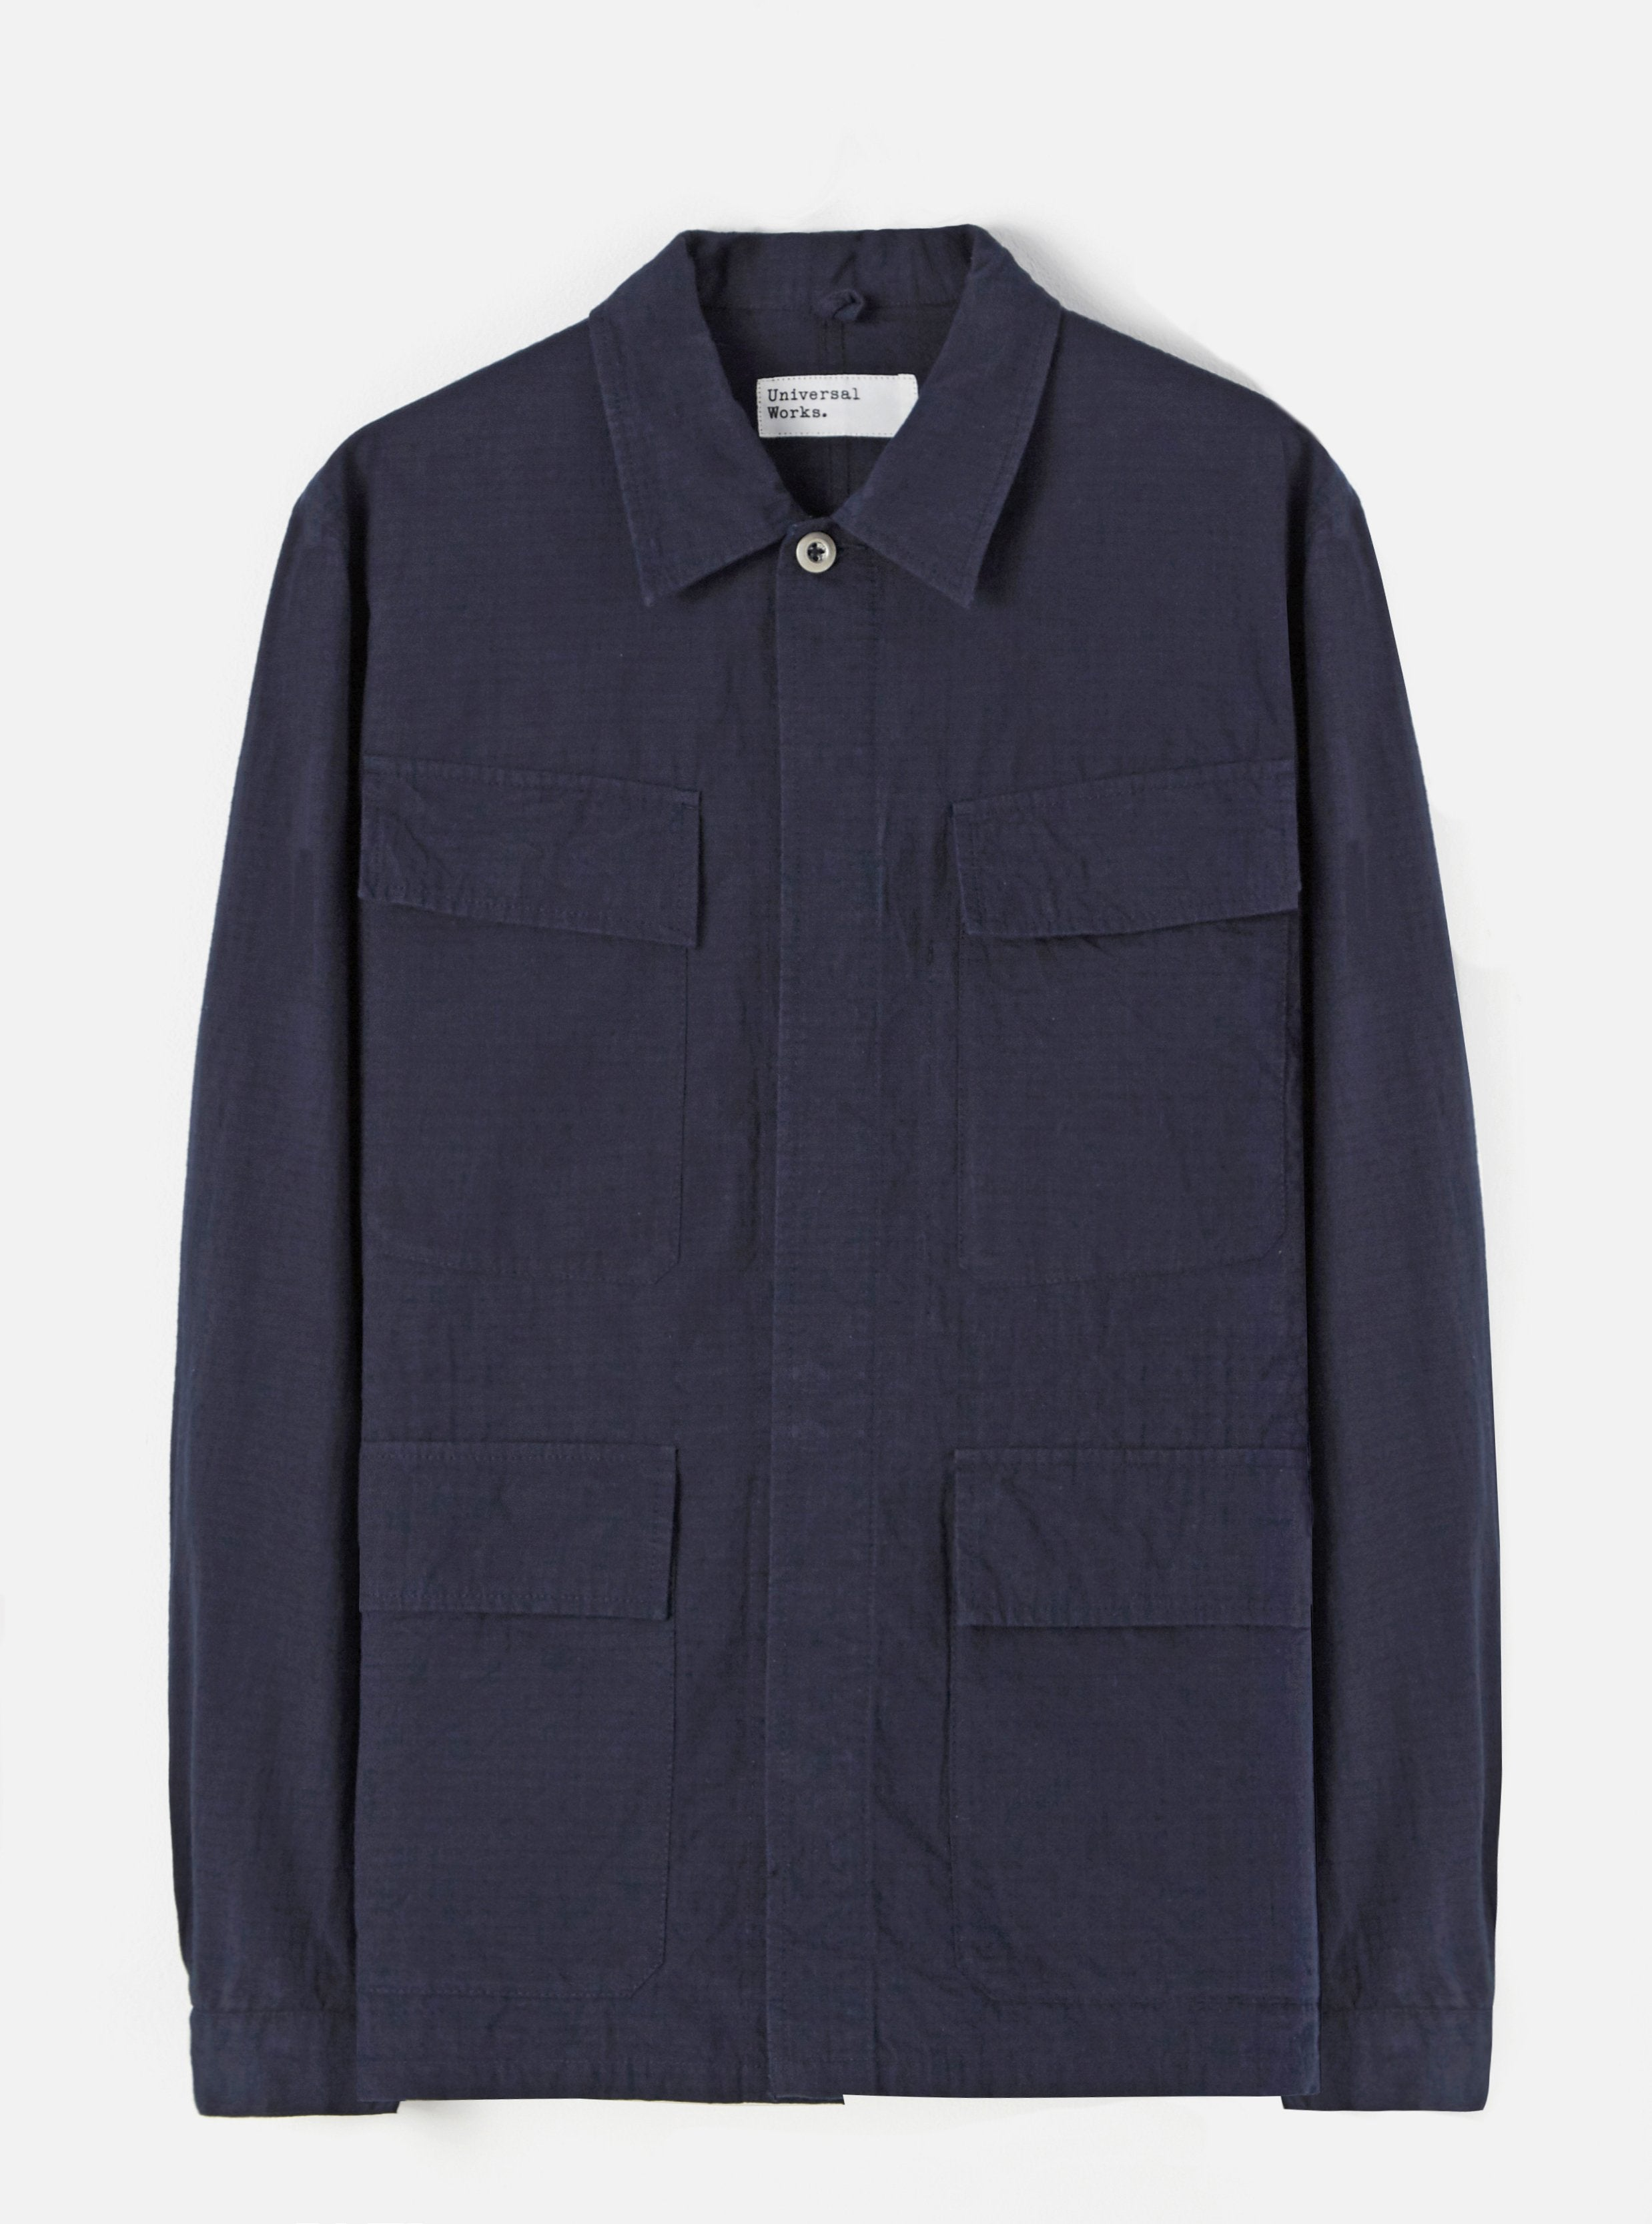 Universal Works MW Fatigue Jacket (Navy Ripstop)